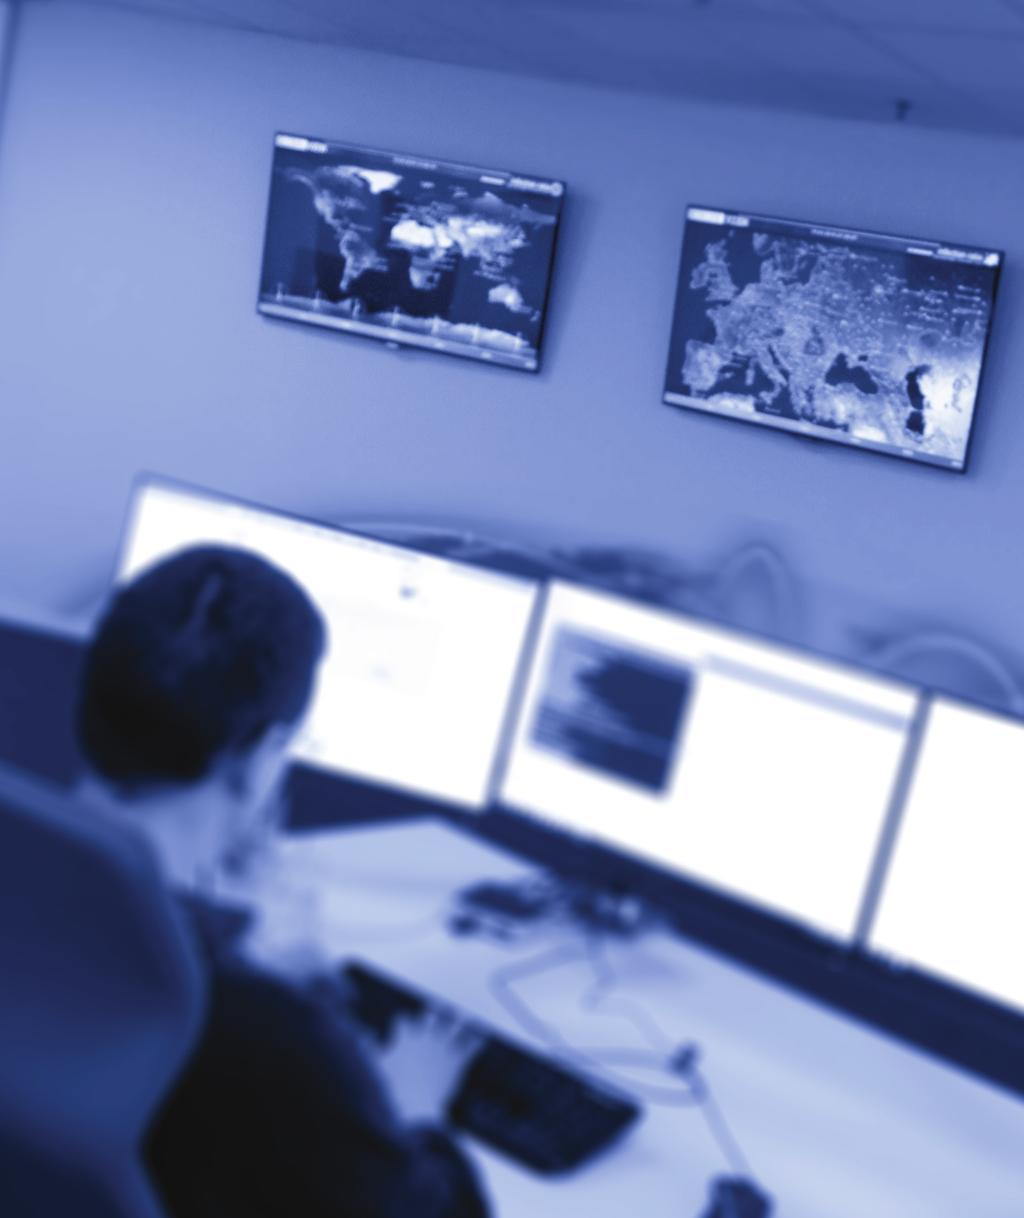 ESET NEDERLAND SECURITY OPERATIONS CENTER Sinds november 2015 heeft ESET Nederland zijn eigen Security Operations Center (SOC) in Sliedrecht.